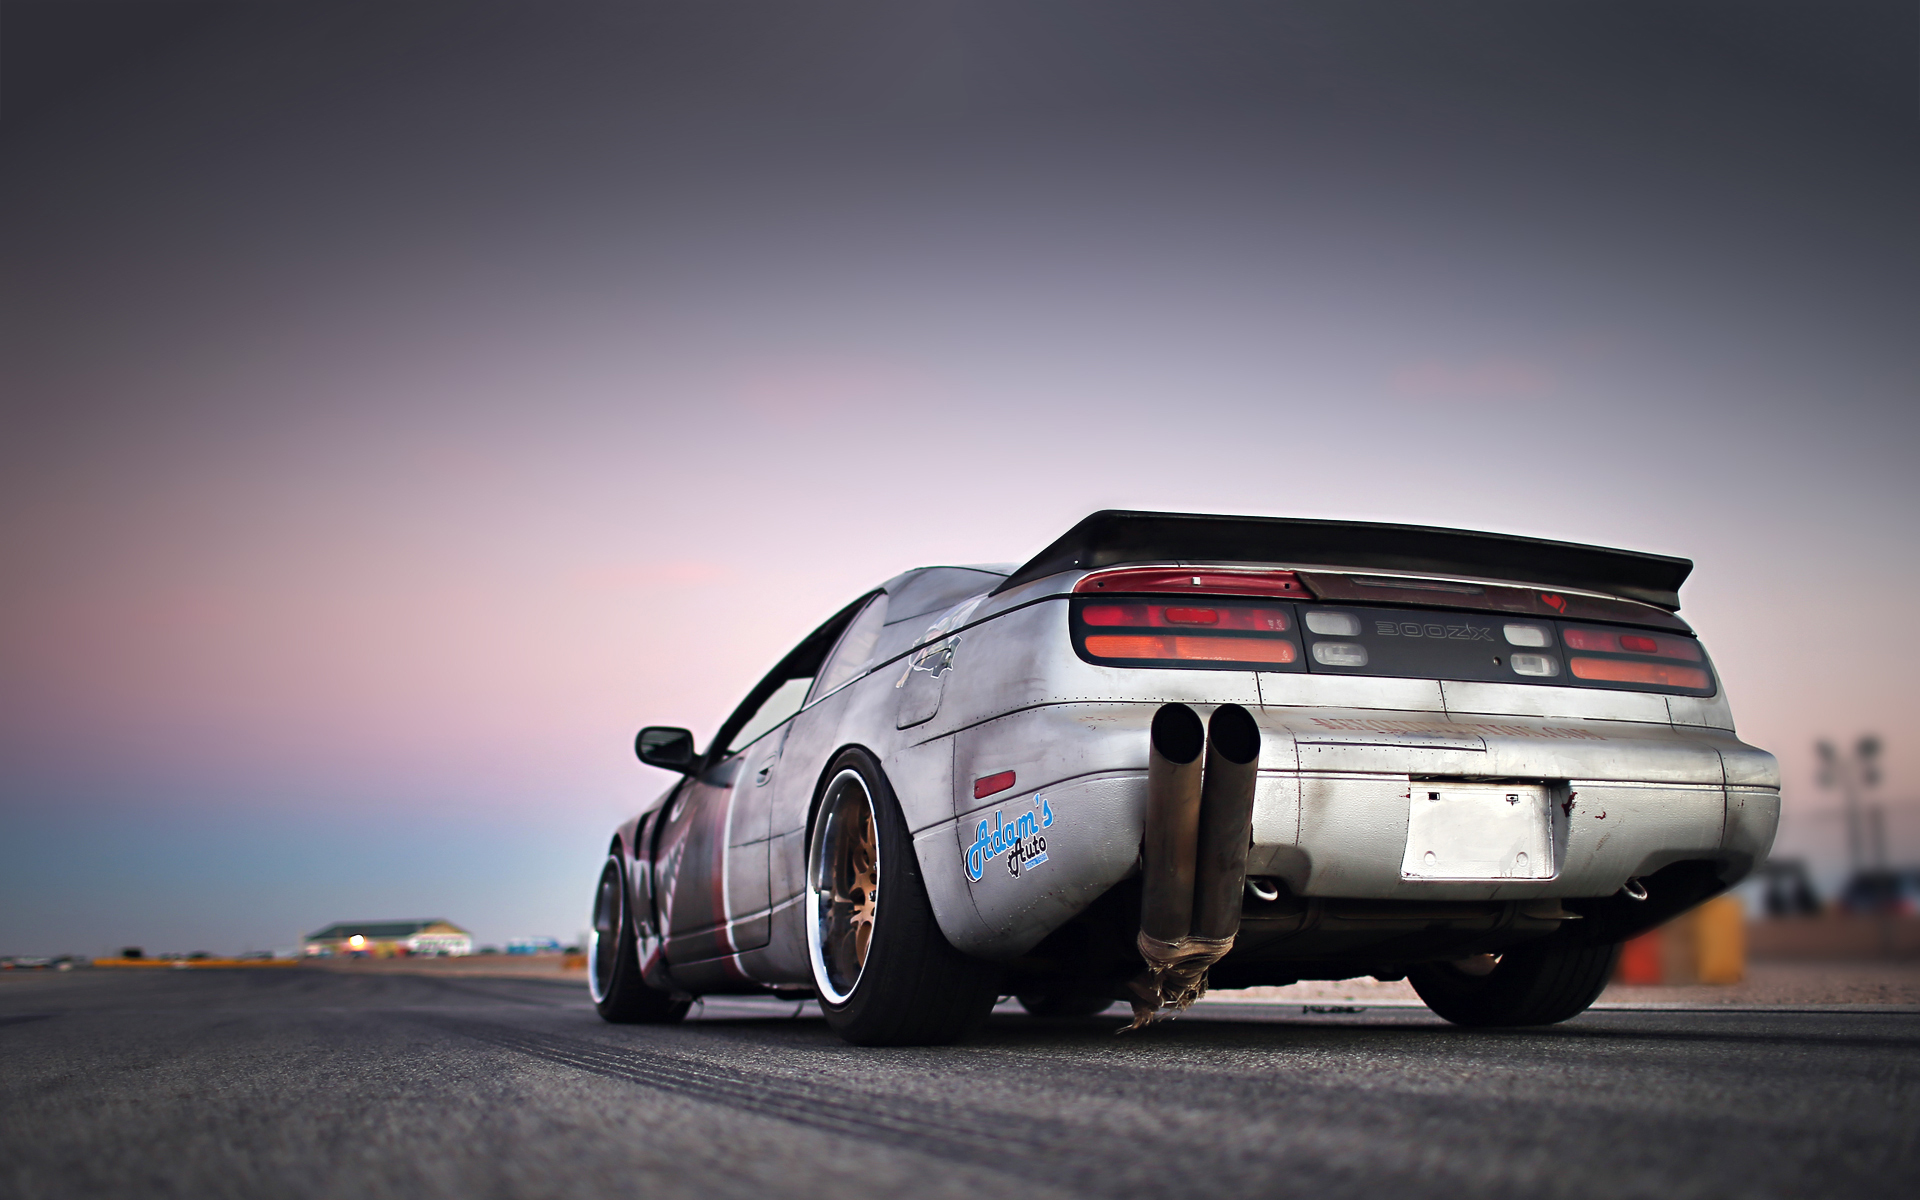 Nissan 300zx tuning car